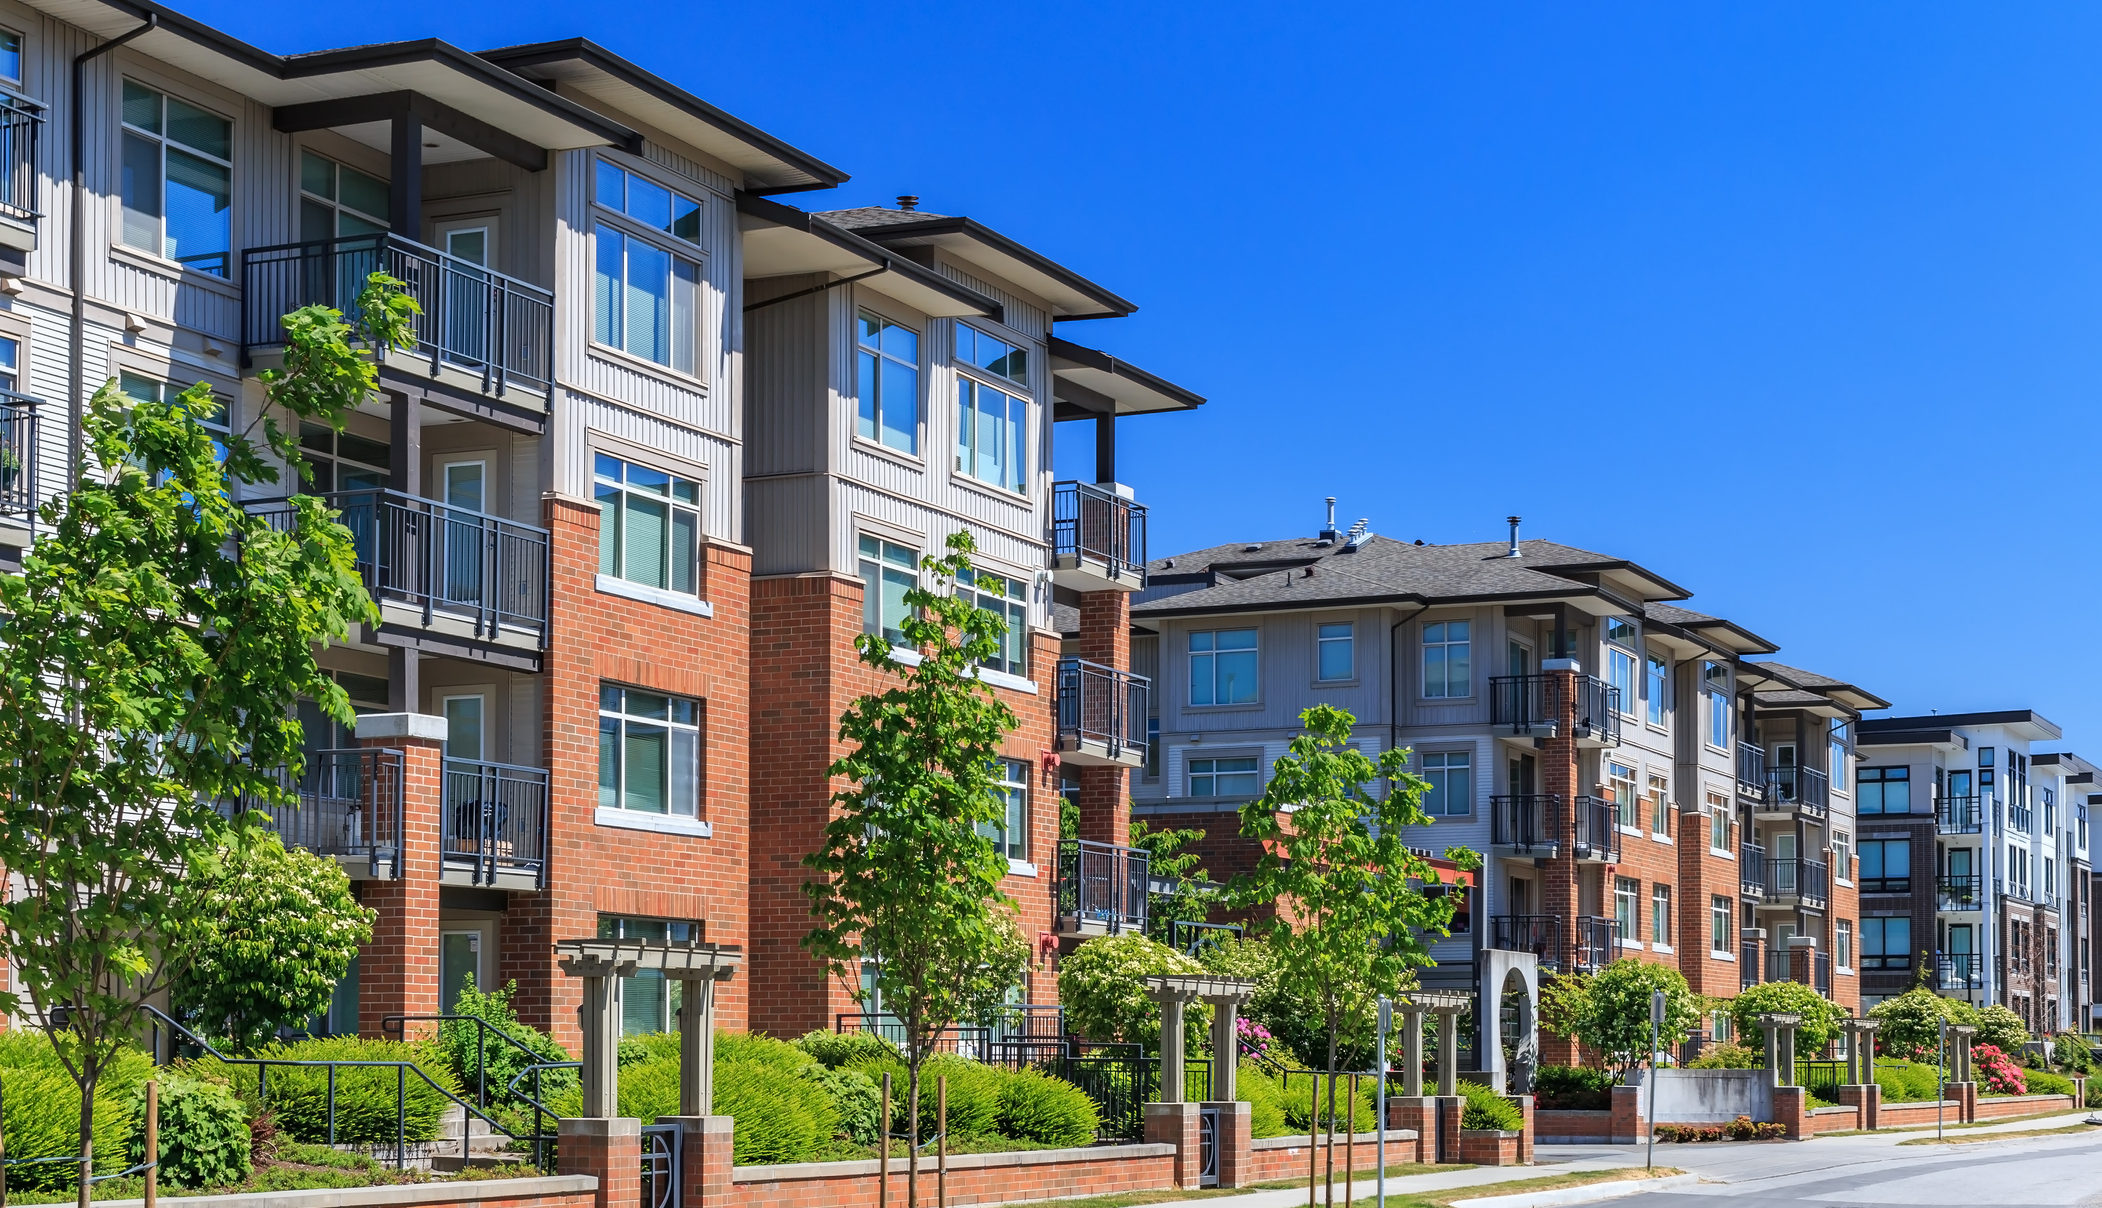 Commercial Real Estate Buford